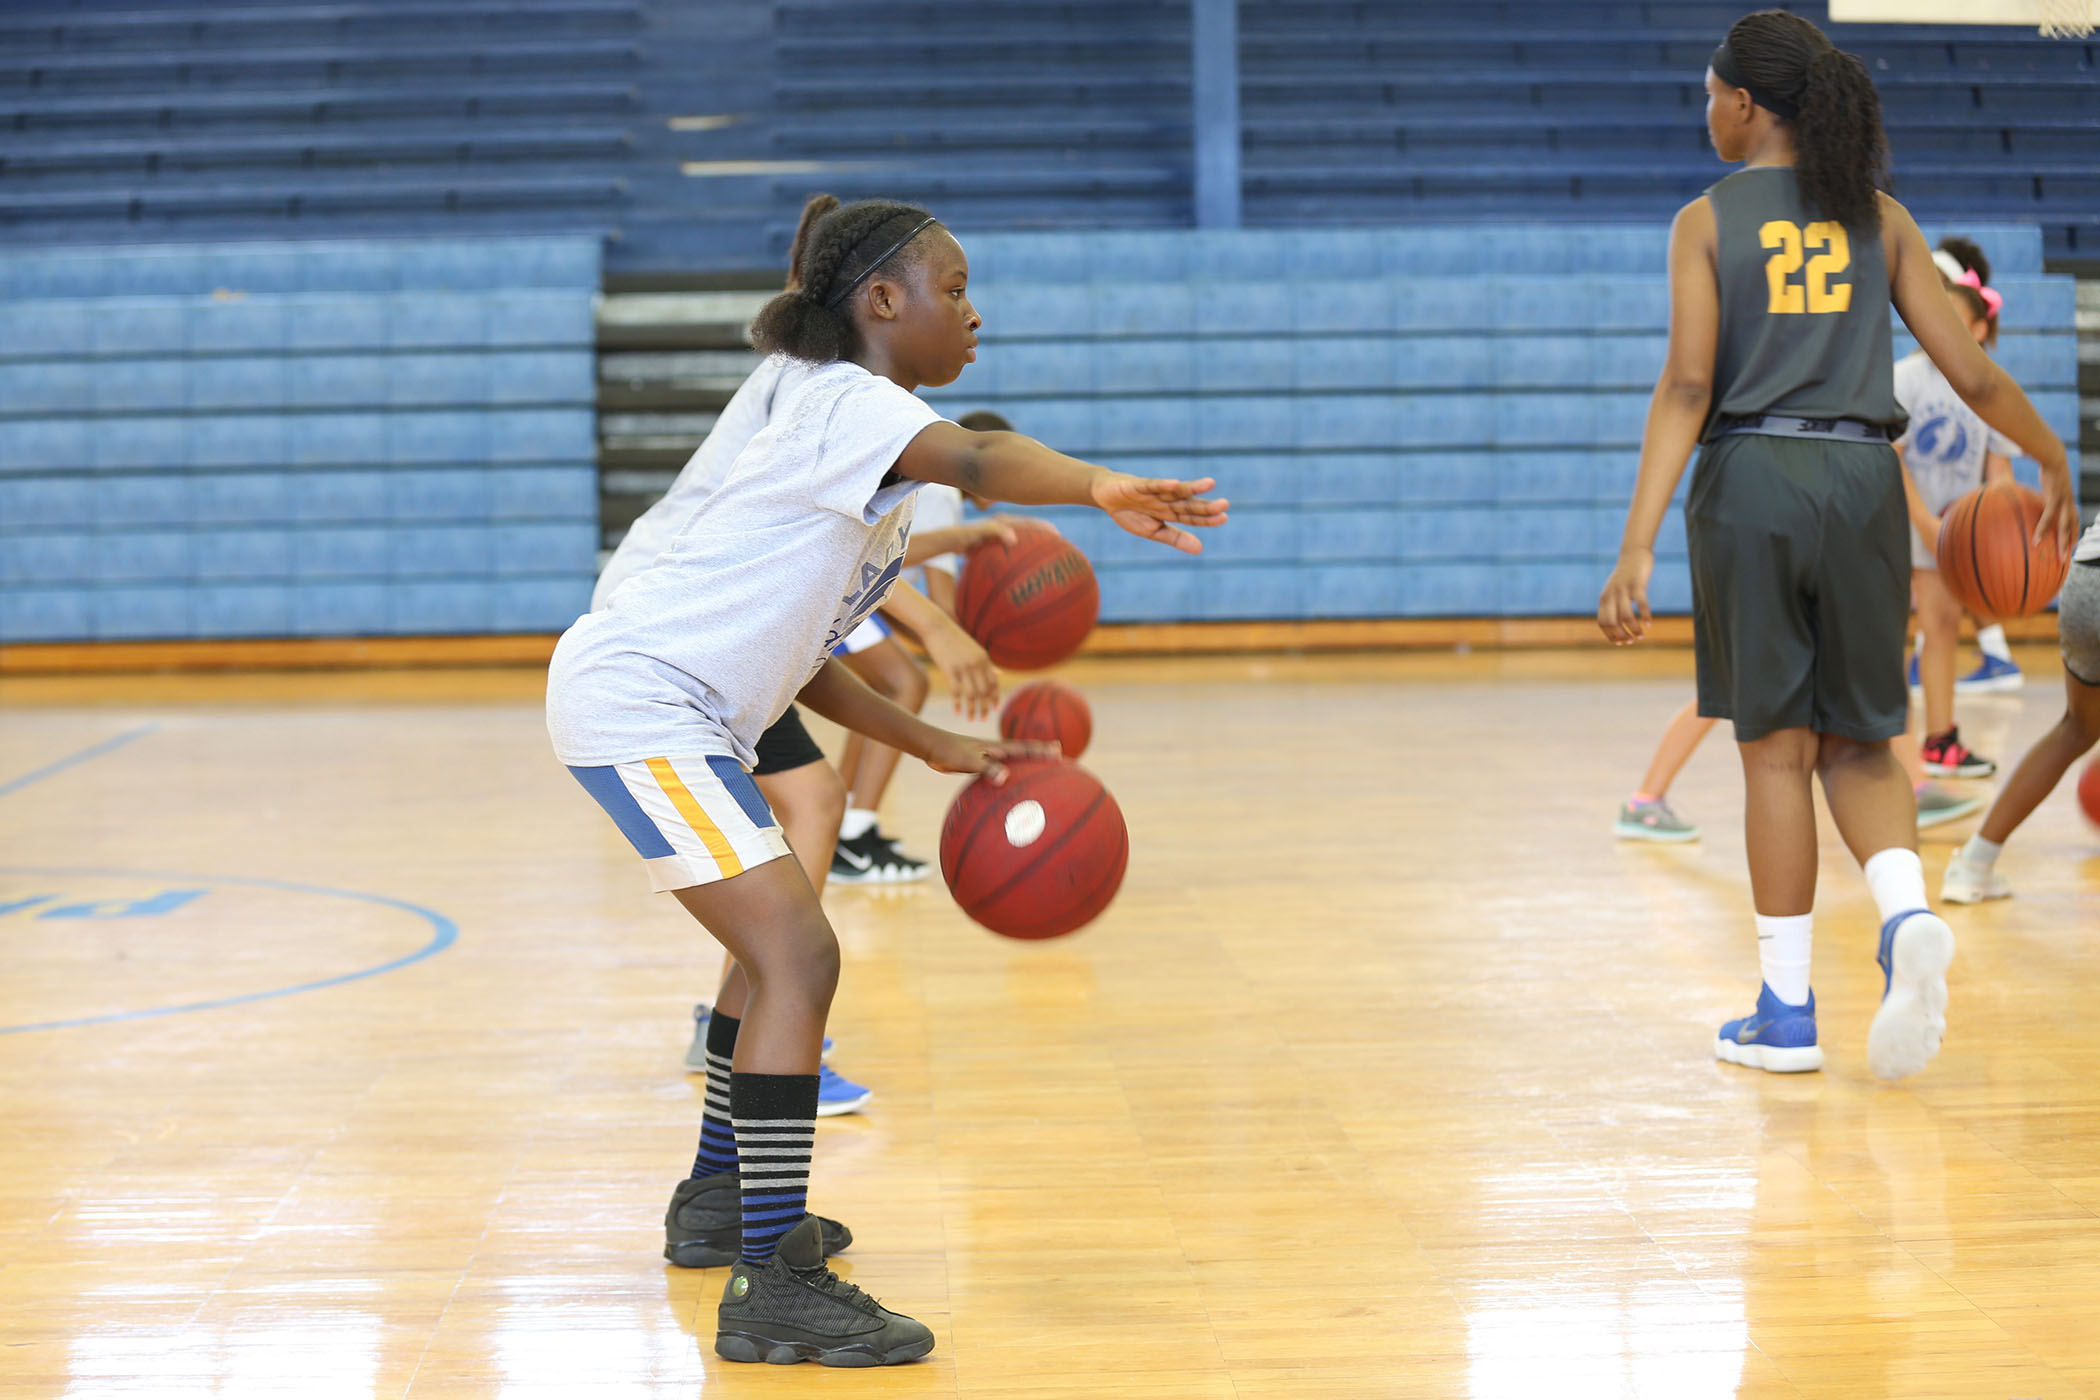 Students in the 2018 Lady Panther Kiddie Camp show vast improvement in skills during their second day of camp.